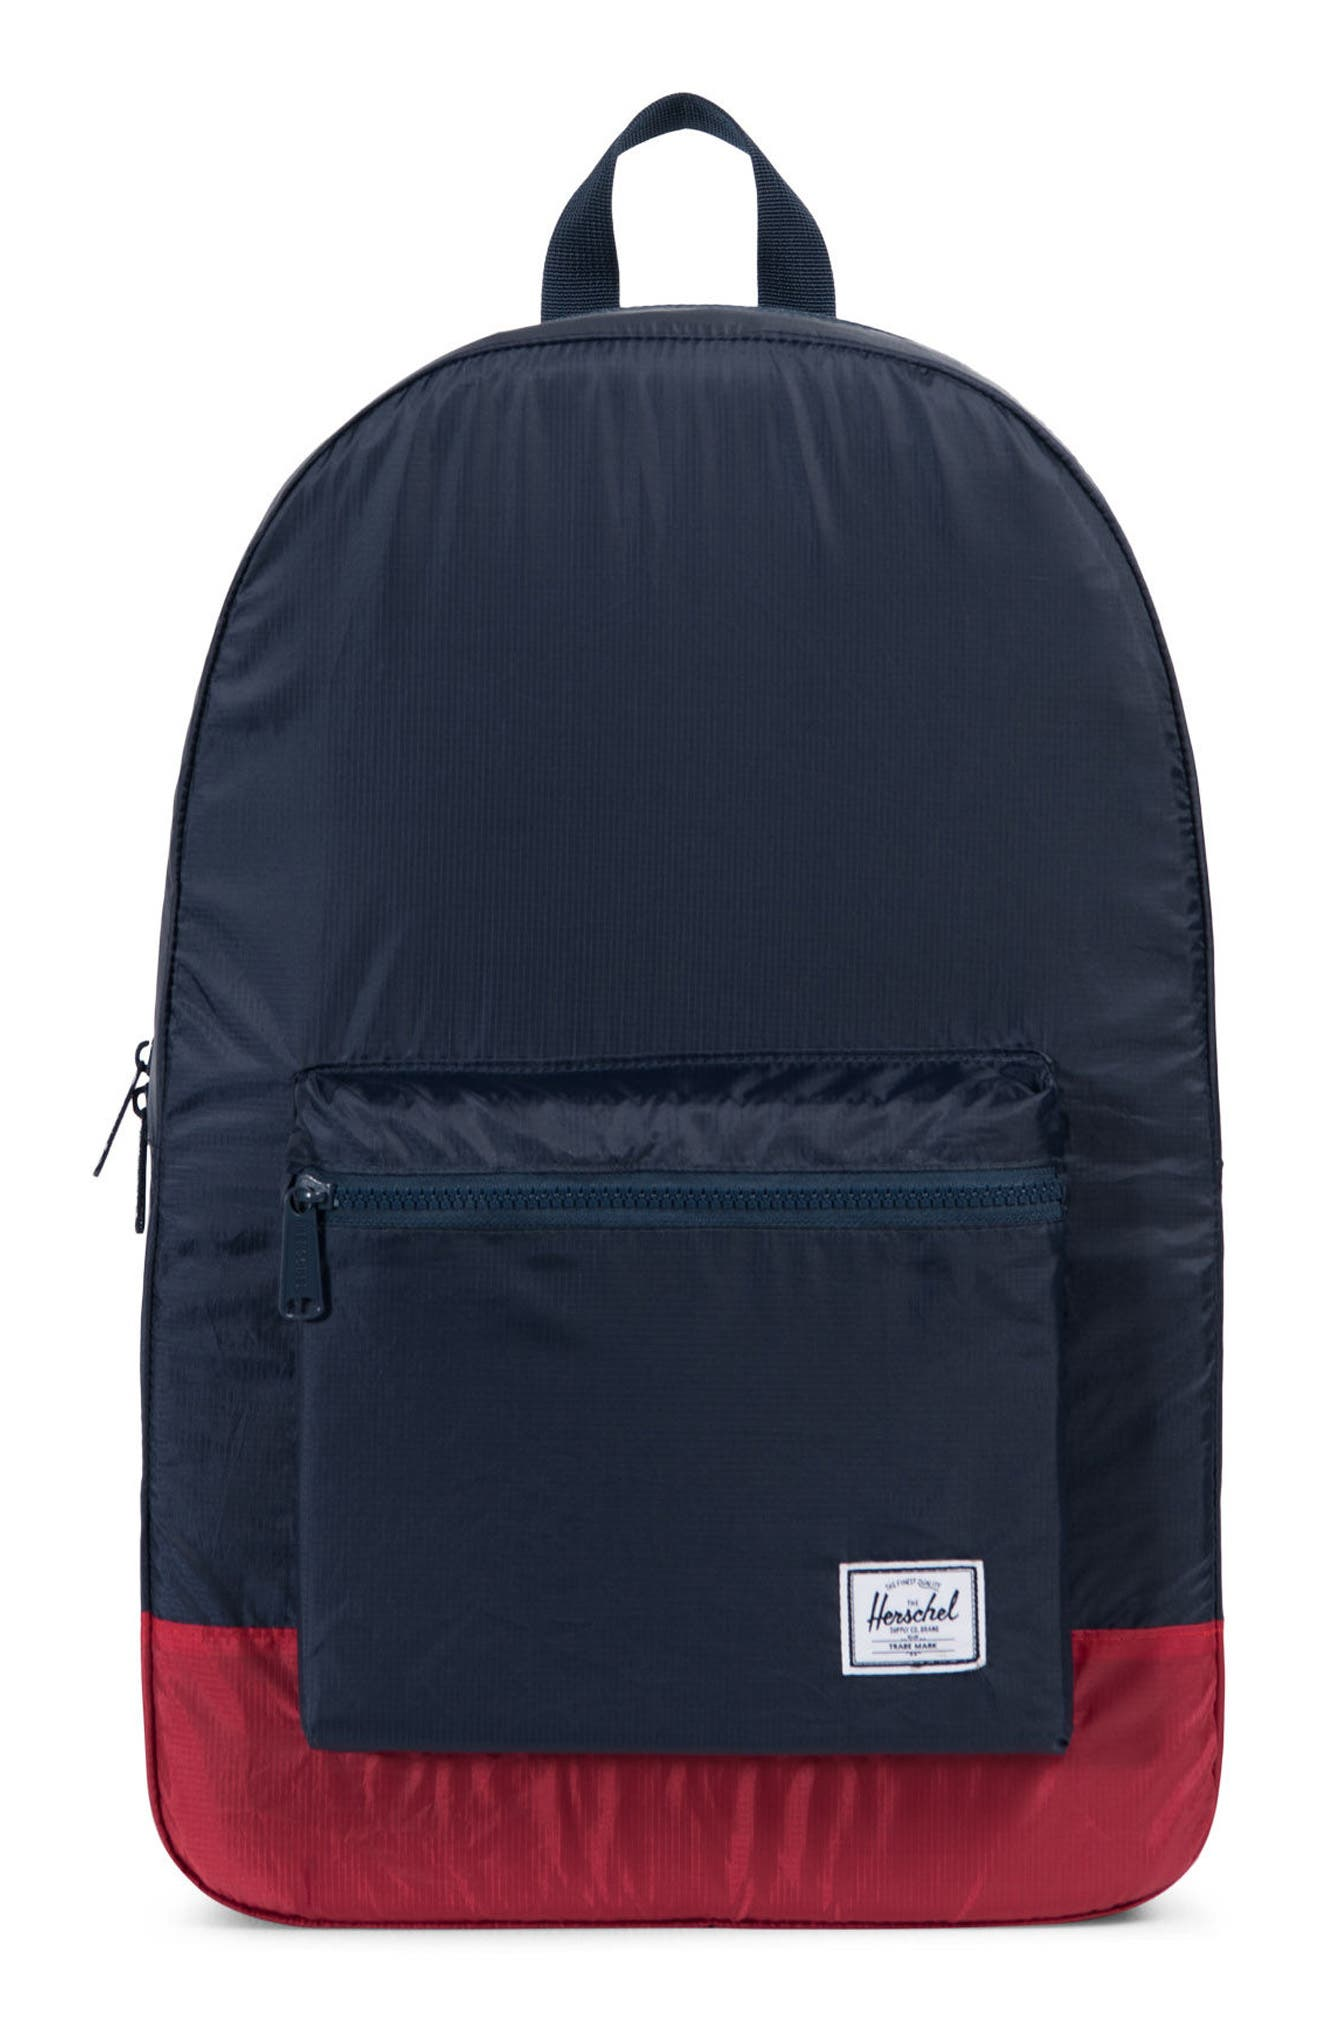 Packable Daypack,                             Main thumbnail 1, color,                             Navy/ Red